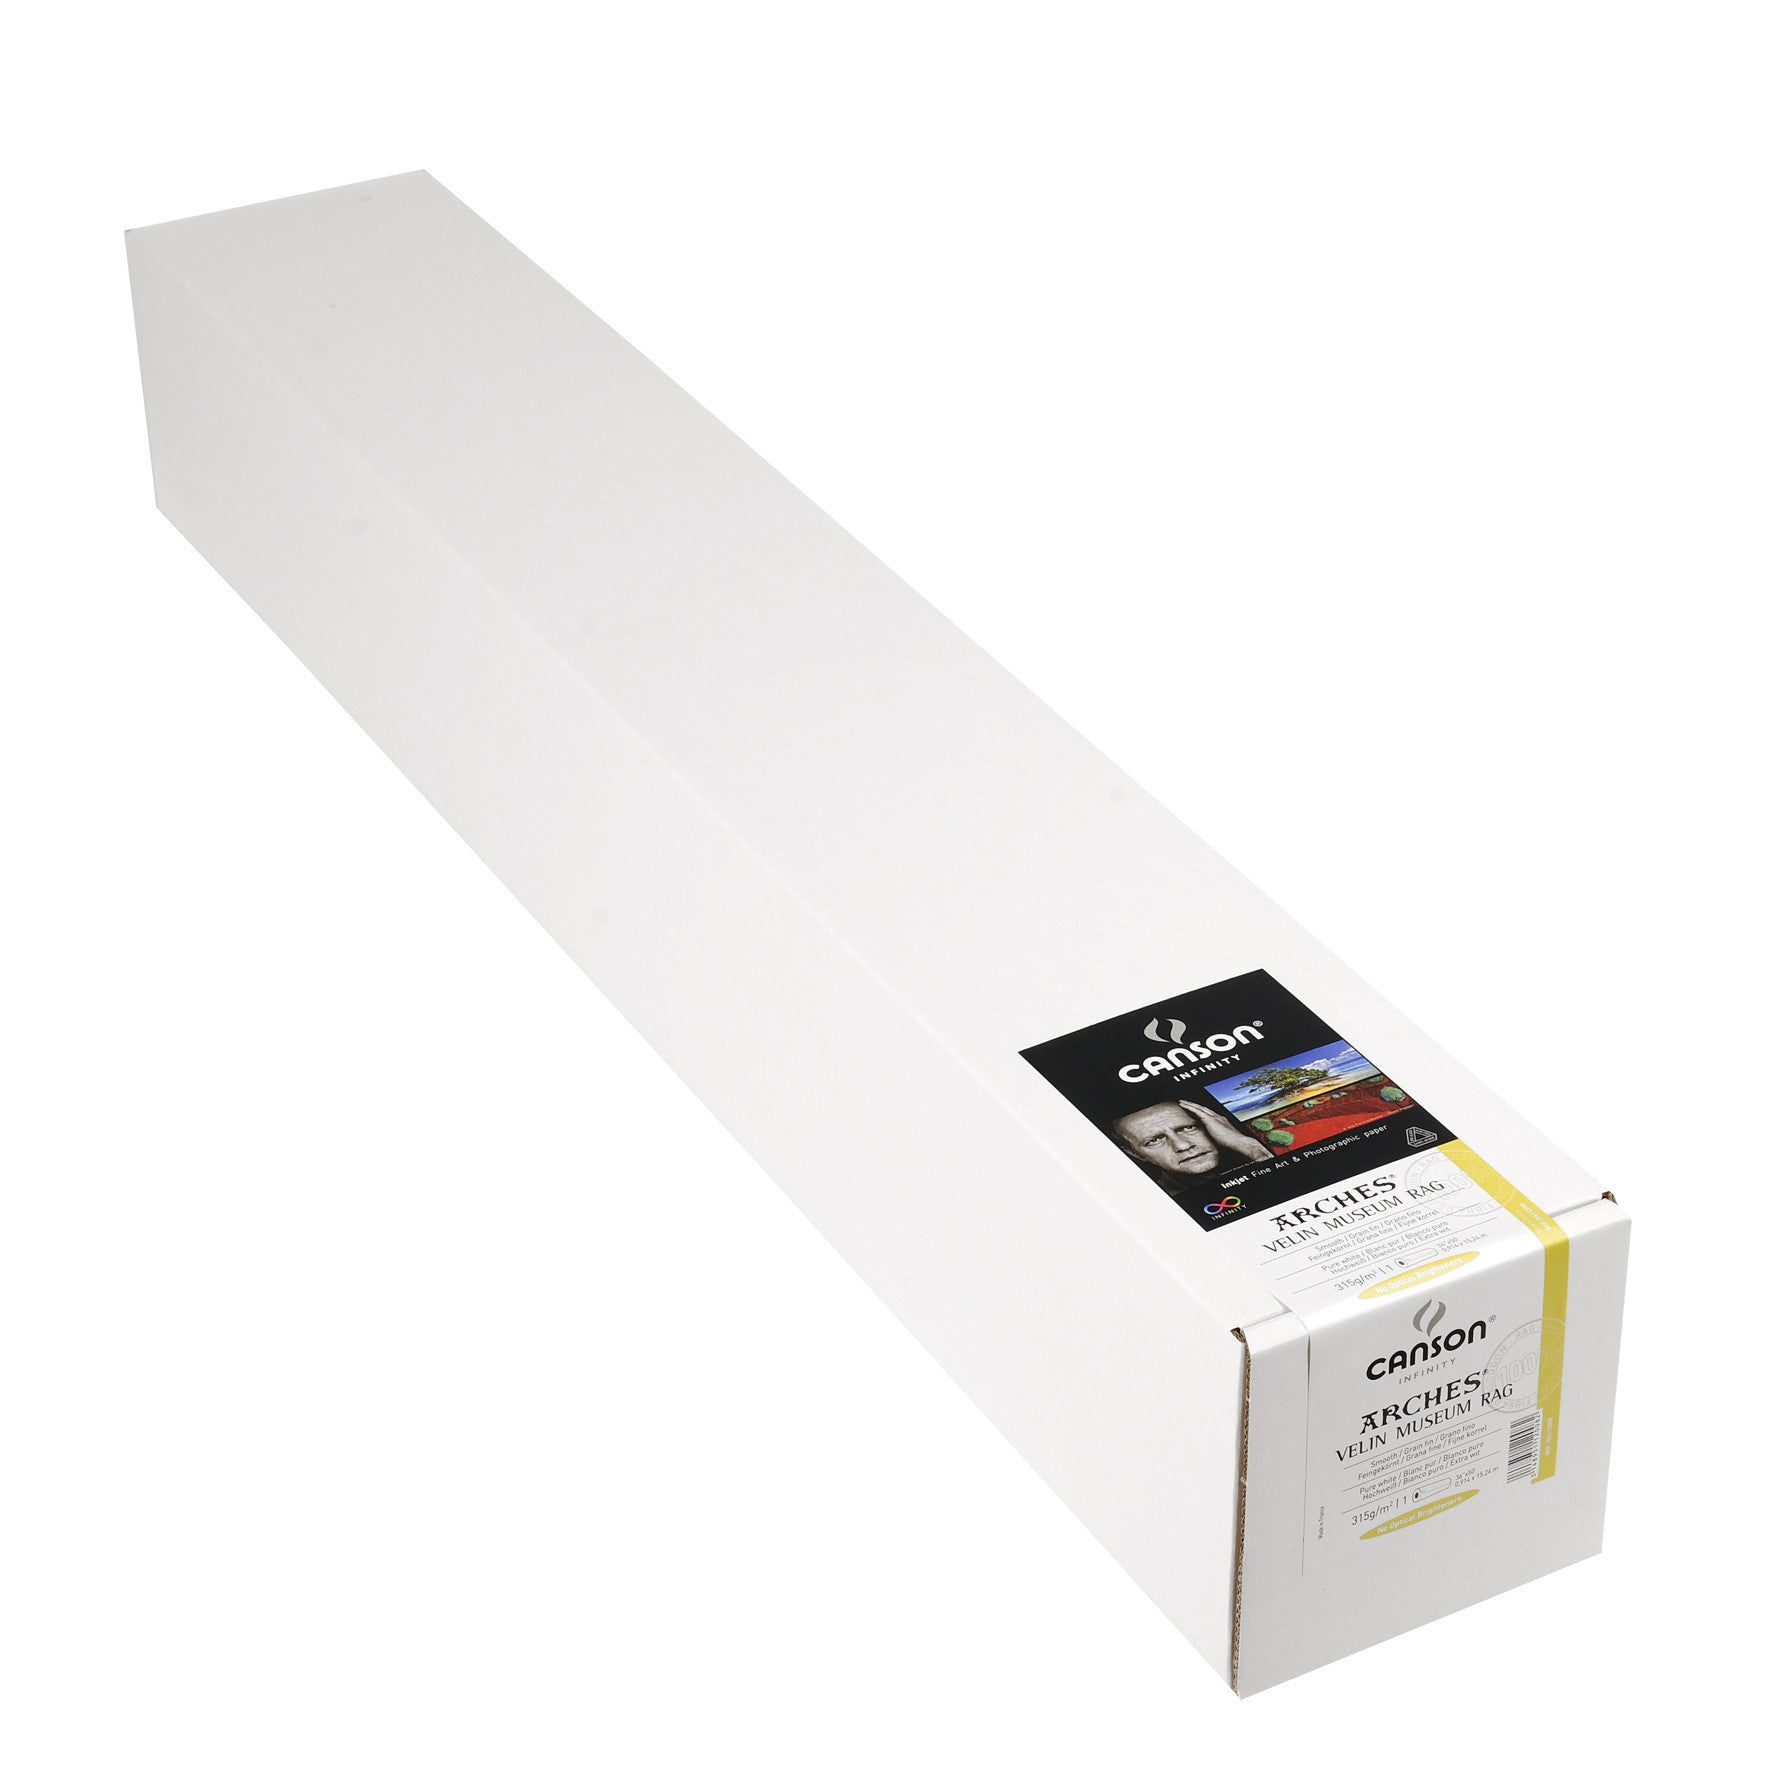 "Canson Infinity Velin Museum Rag - 315gsm - 36""x50' roll"